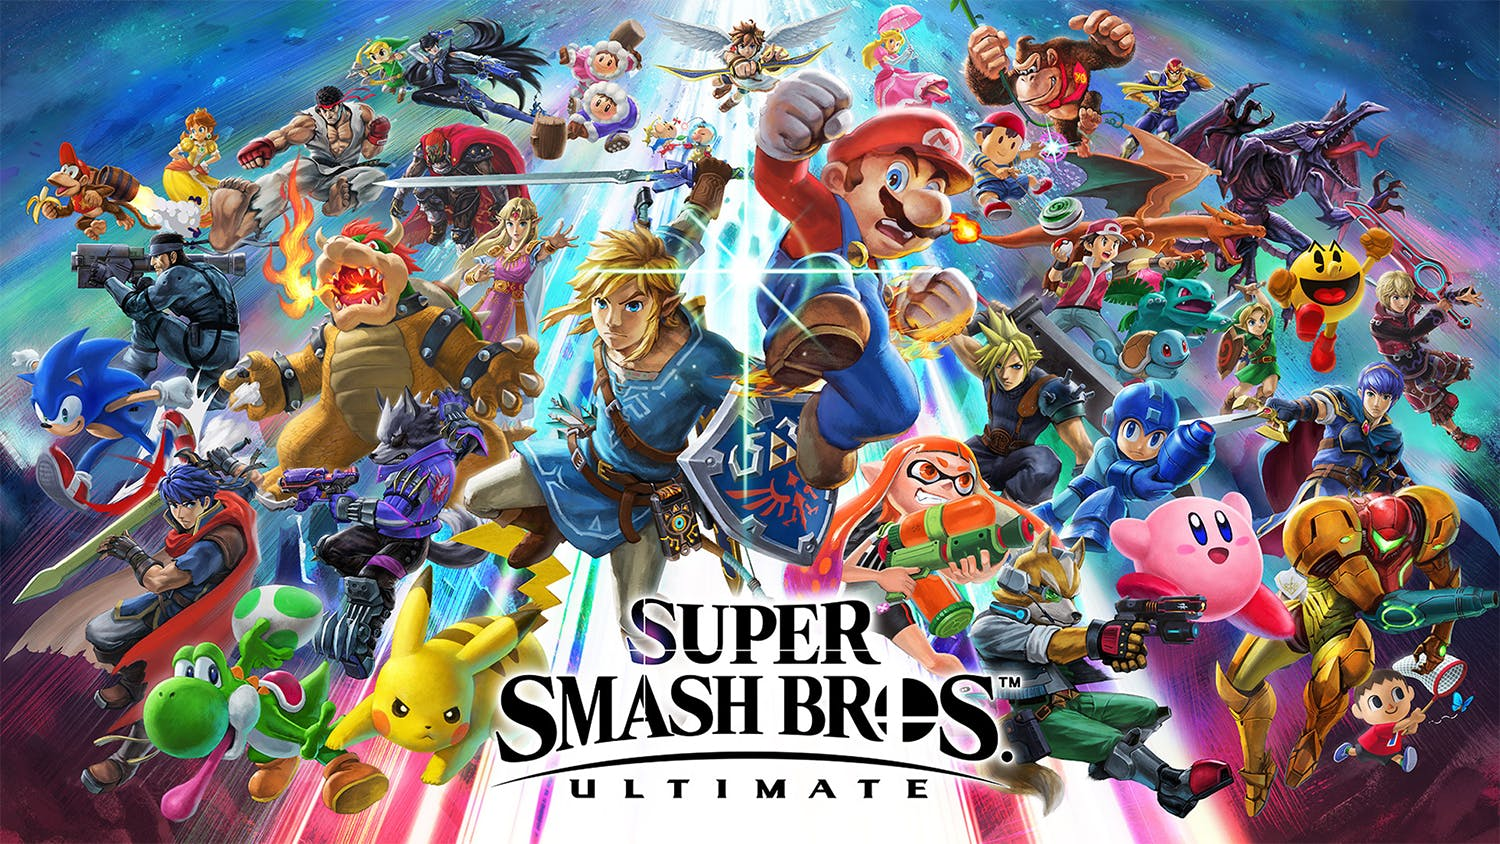 Nintendo Super Smash Bros. Ultimate (PG)